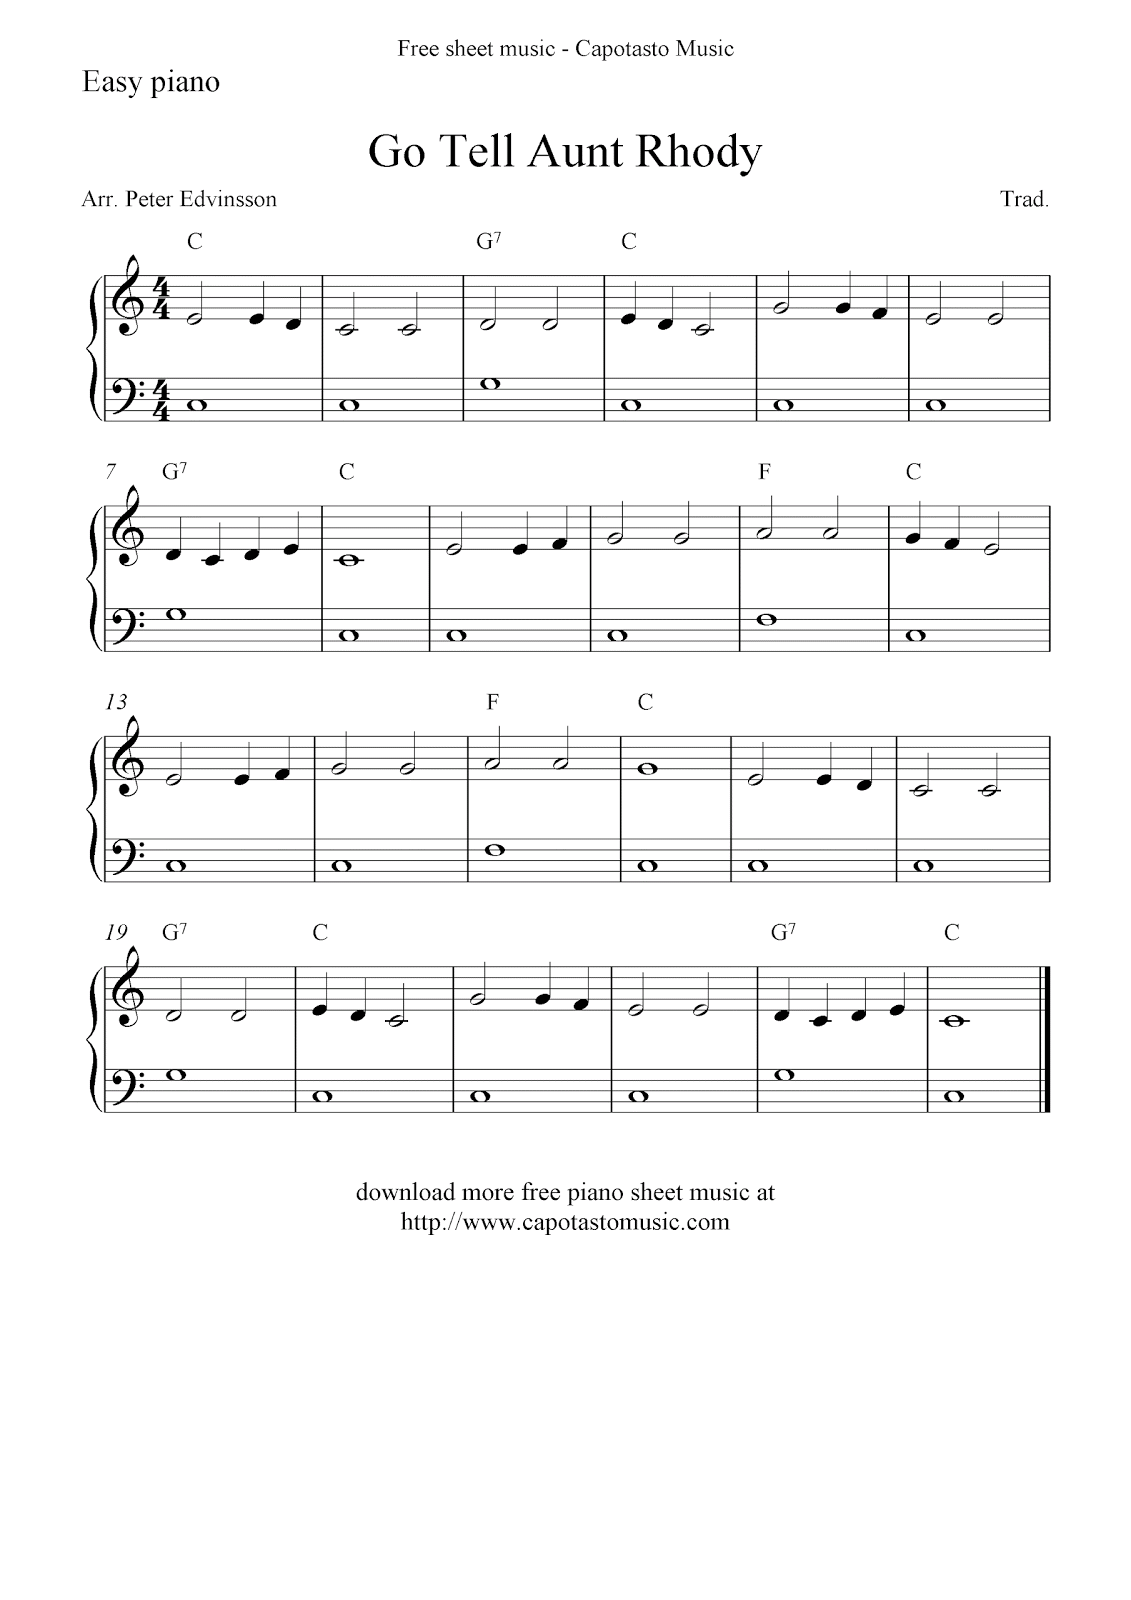 Easy piano solo for beginners with the melody Go Tell Aunt Rhody. Free piano sheet music score at Capotasto Music!